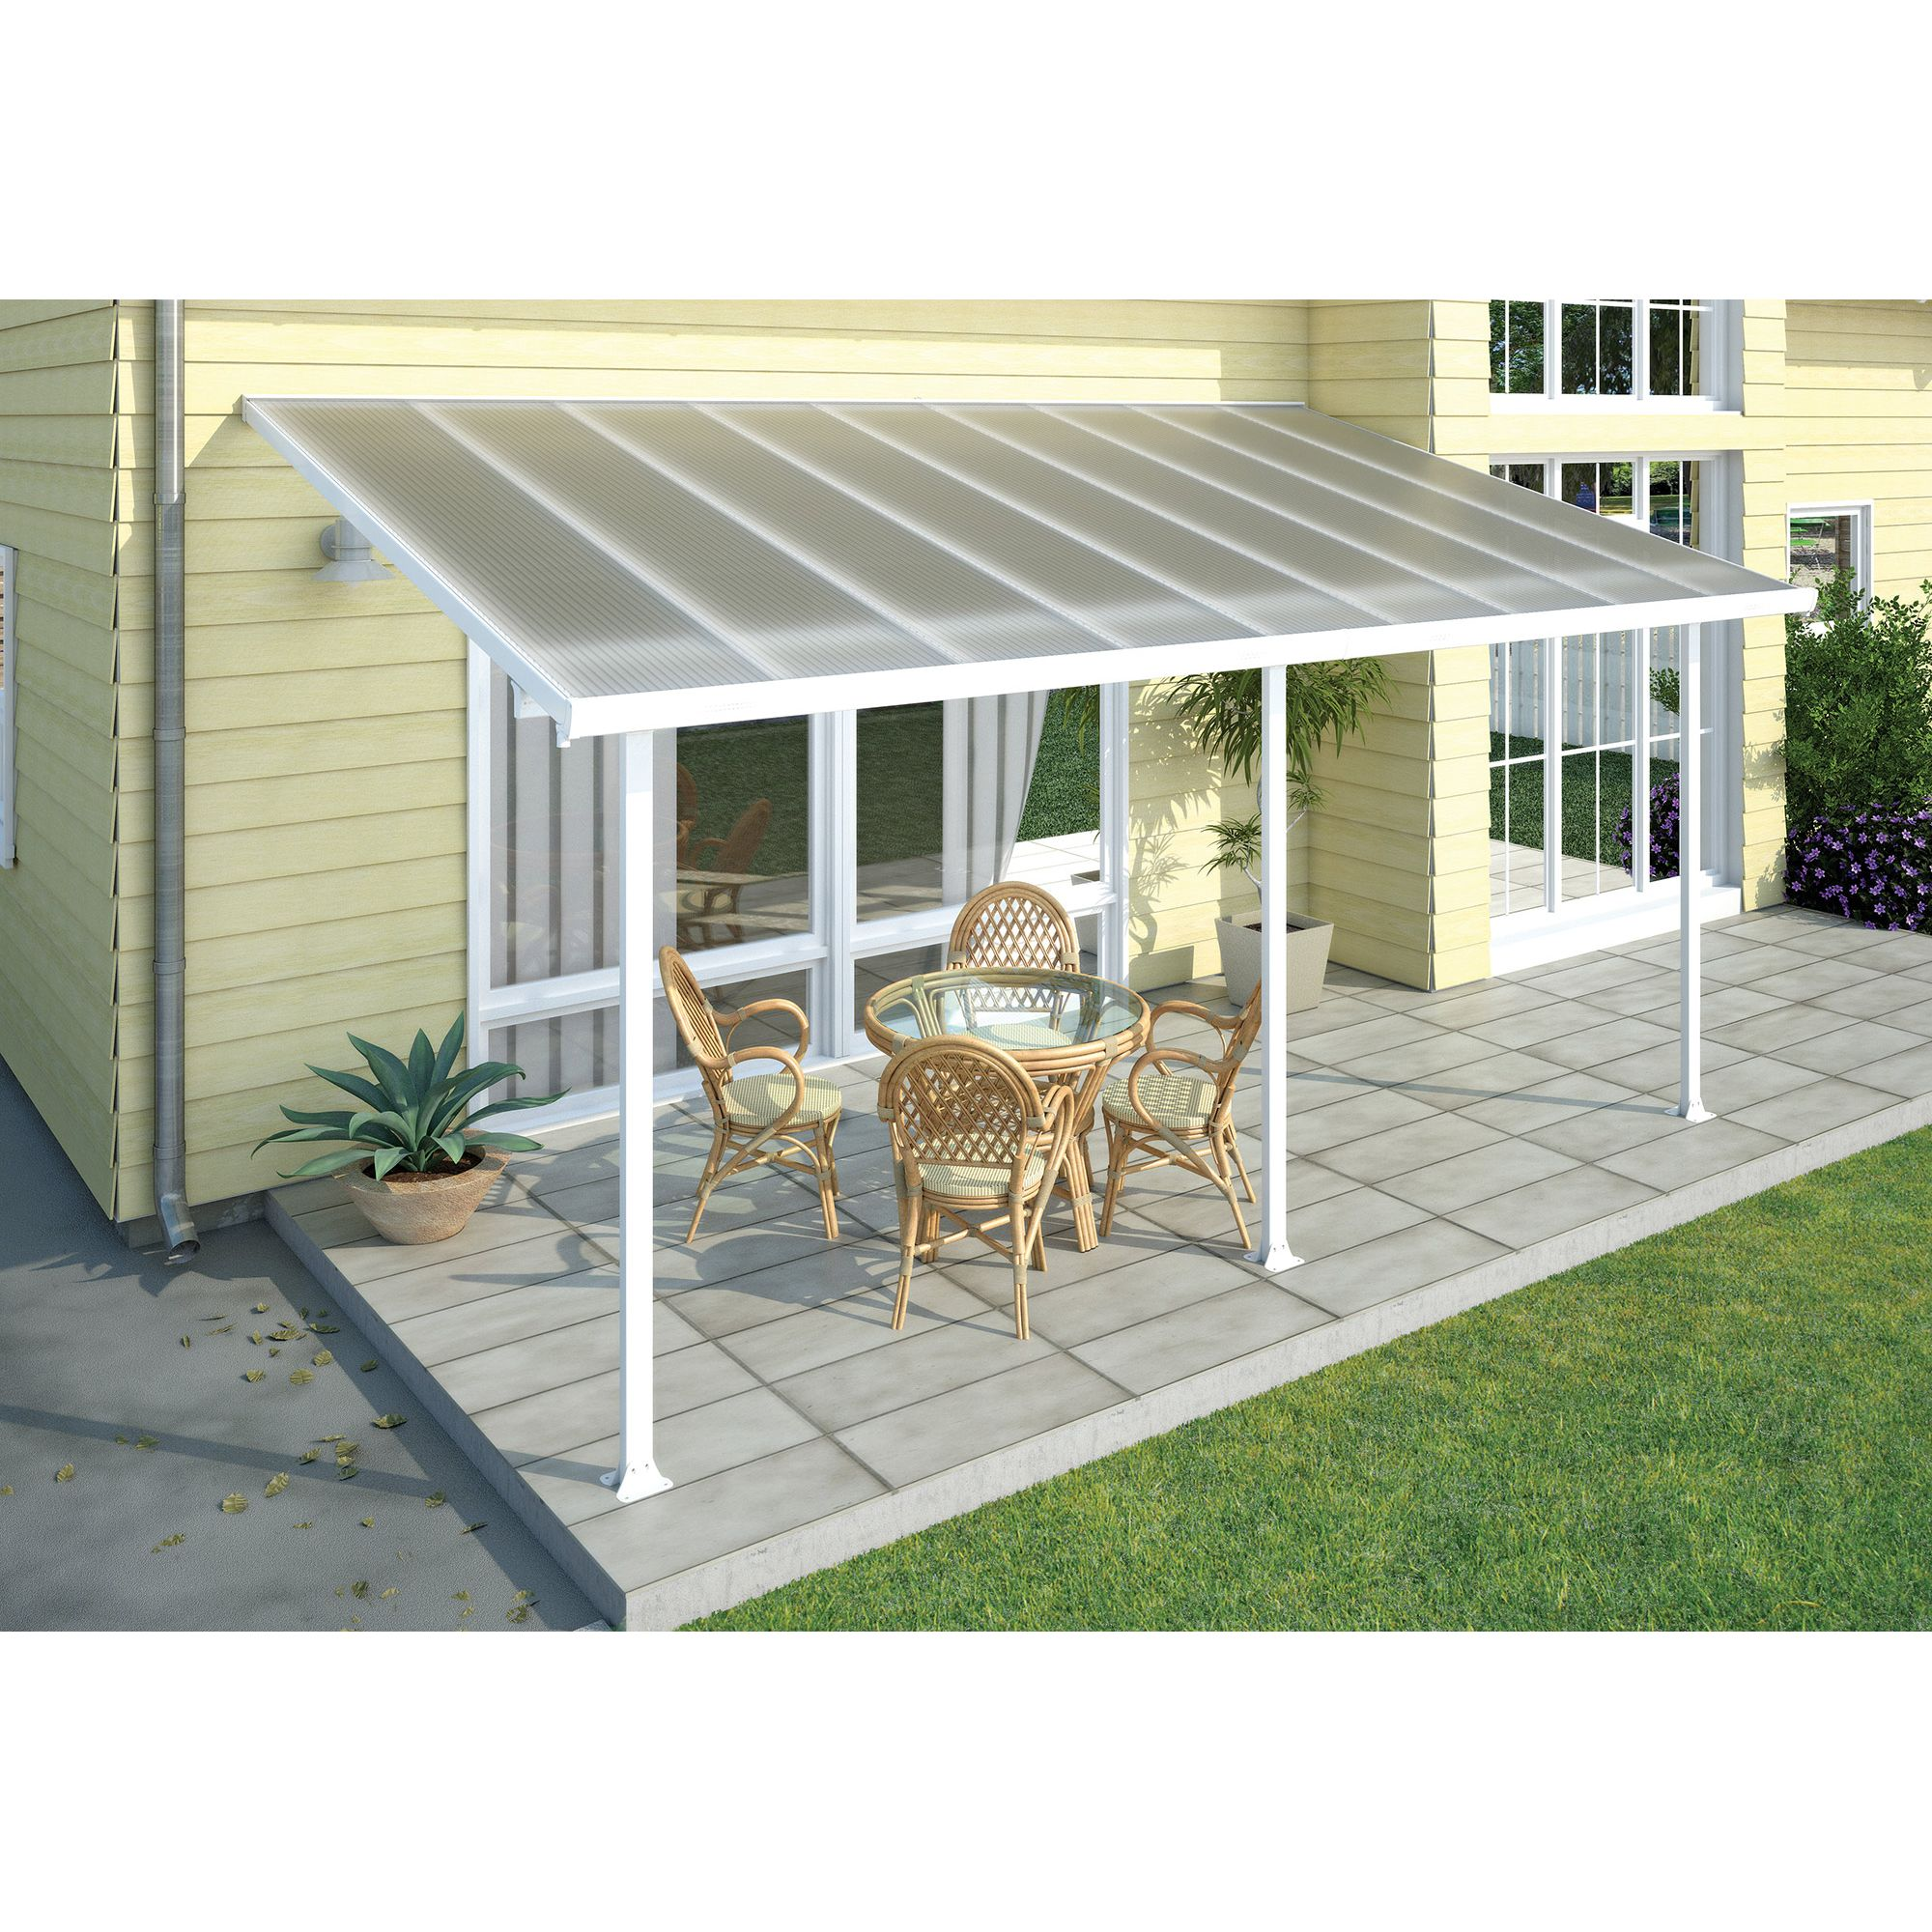 FERIA LEAN TO CARPORT AND PATIO COVER 3X5.4 WHITE at Tesco Direct